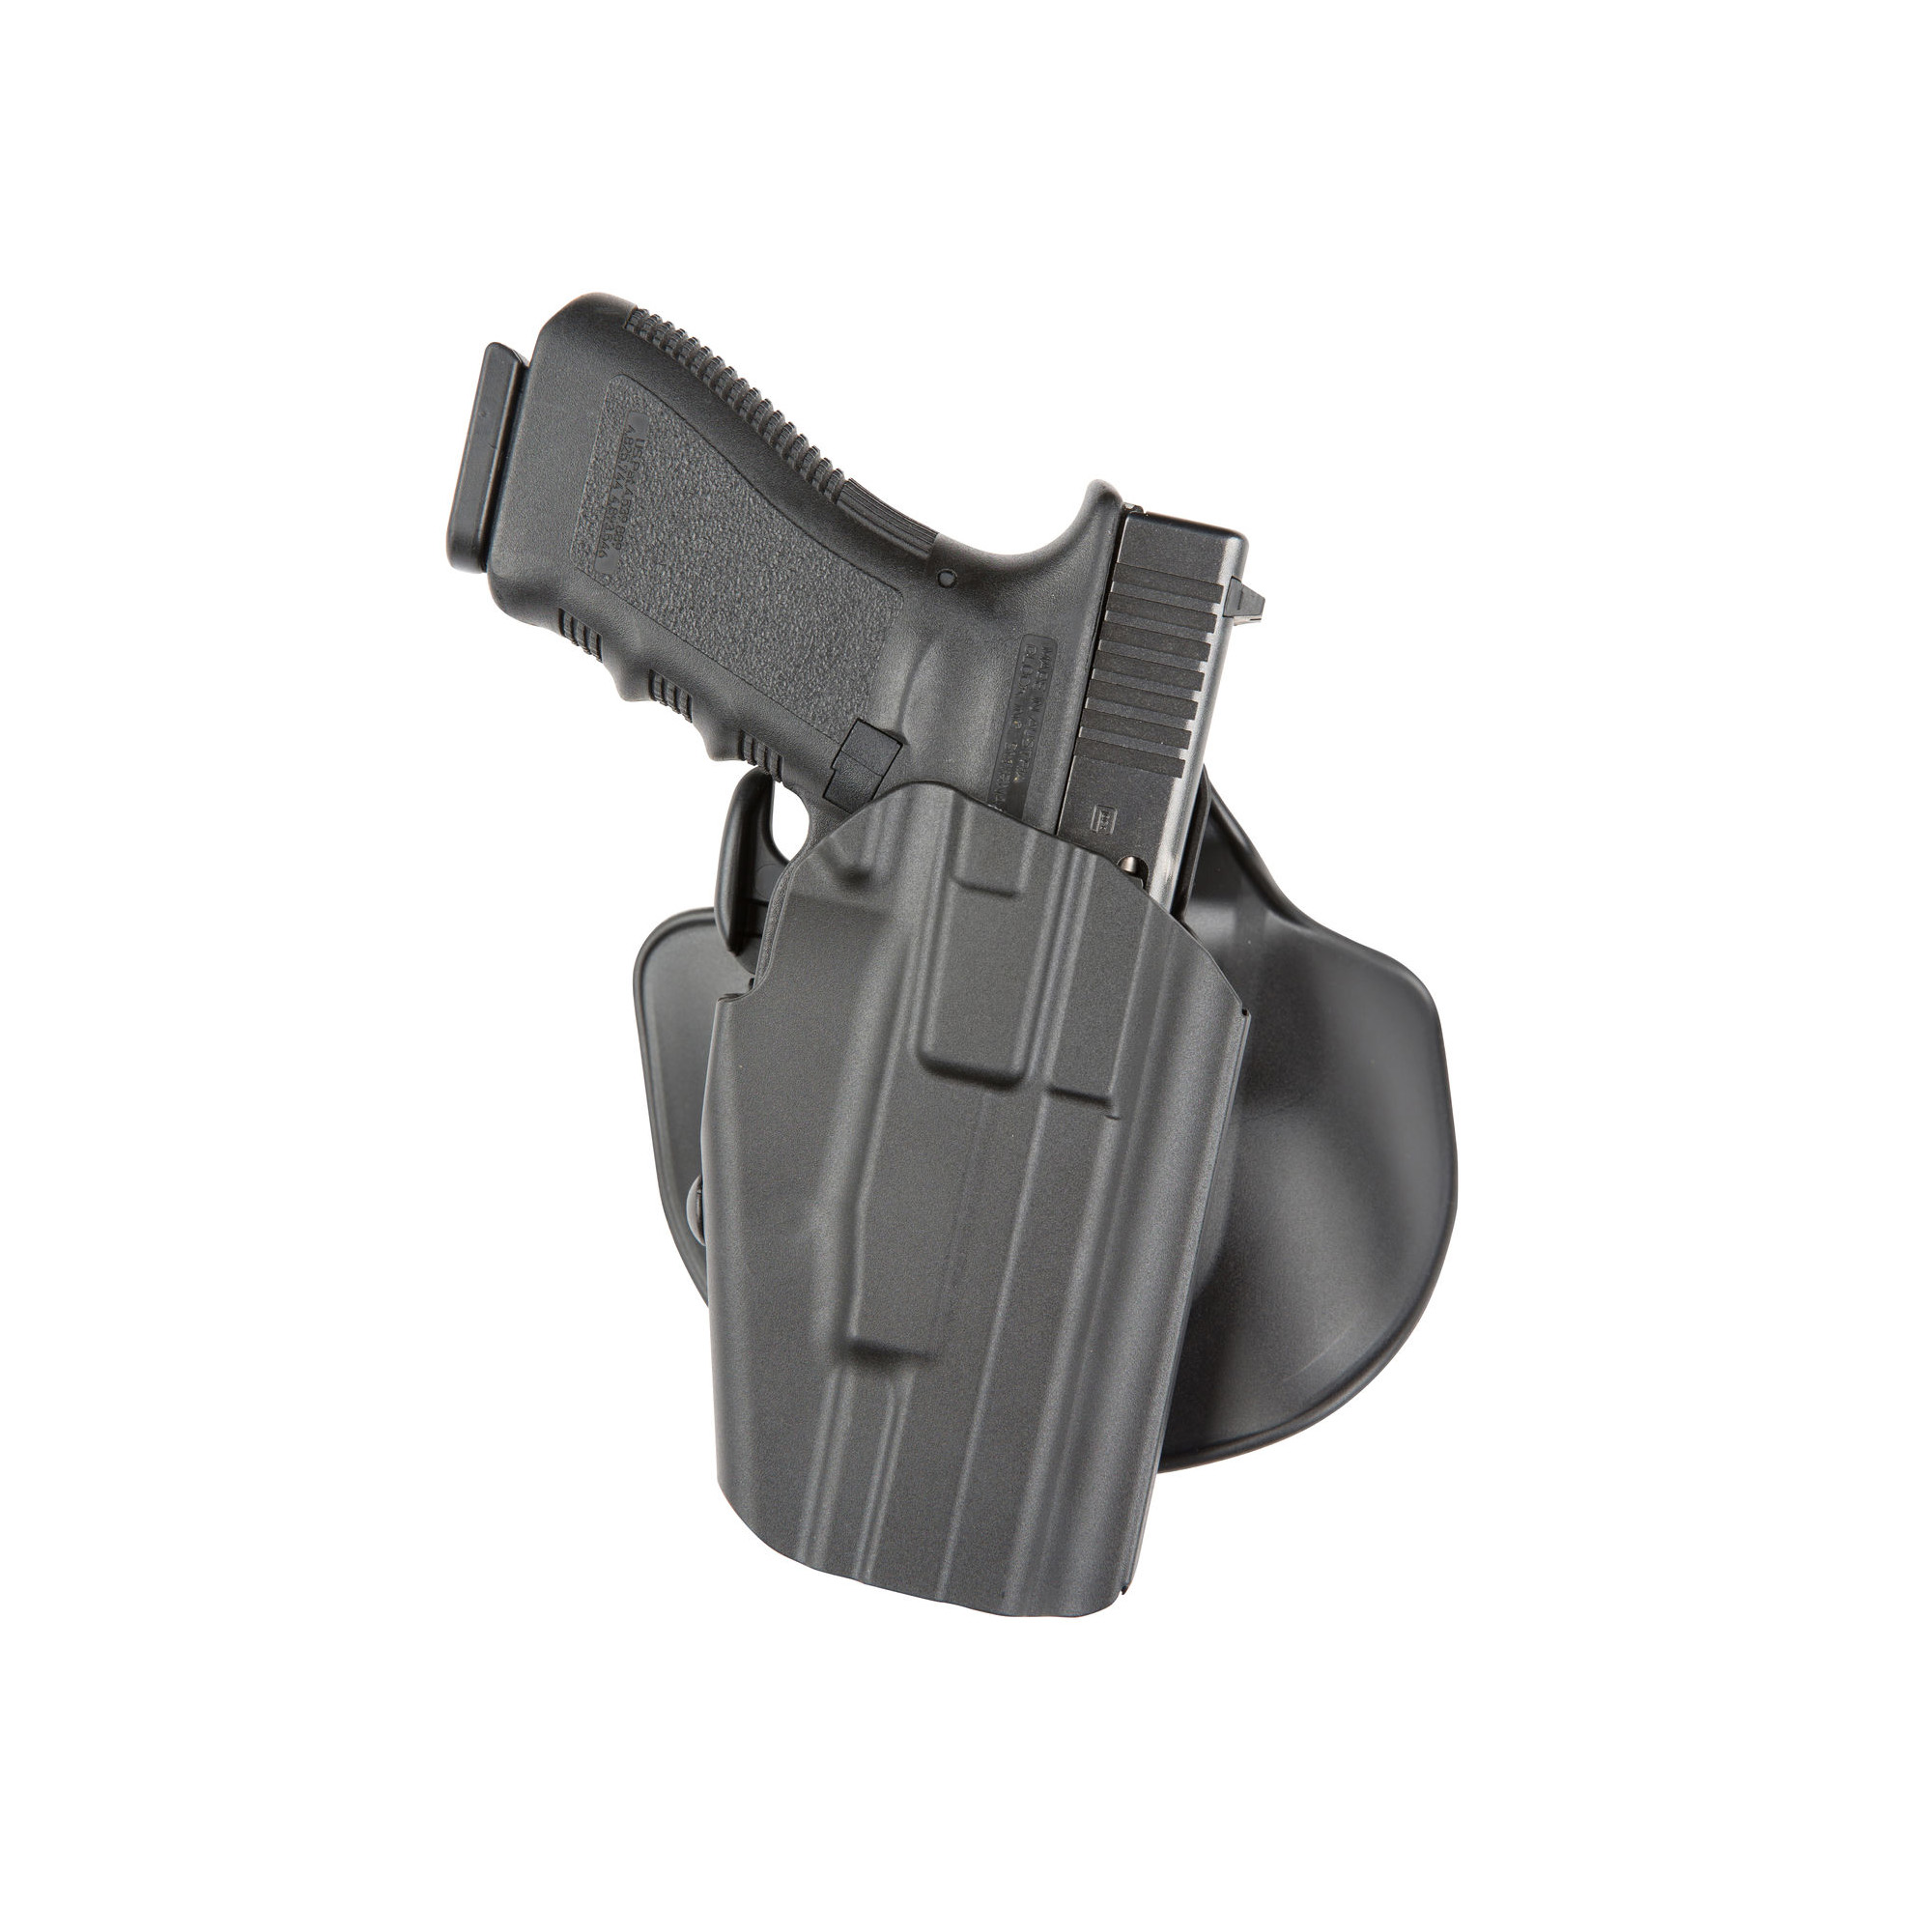 "The Model 578 GLS(TM) Pro-Fit brings the unique GLS(TM) (Grip Lock System) and SafariSeven(TM) together in a holster designed to fit a wide variety of guns. The Pro-Fit(TM) is customizable and adjusts to securely fit over 60 firearms. The 578 also features the GLS(TM)"" an innovative technology that automatically secures the weapon when holstered and releases it upon application of the middle finger with a standard shooting grip for a more intuitive and safer release. The holster body is constructed with SafariSeven(TM)"" a lightweight"" state-of-the-art nylon blend is completely non-abrasive to a gun's finish"" tolerant of extreme high and low temperatures"" and easy to maintain. This holster includes an injection-molded paddle and an injection-molded belt loop that is adjustable for maximum comfort and allows the holster to be worn cross draw."